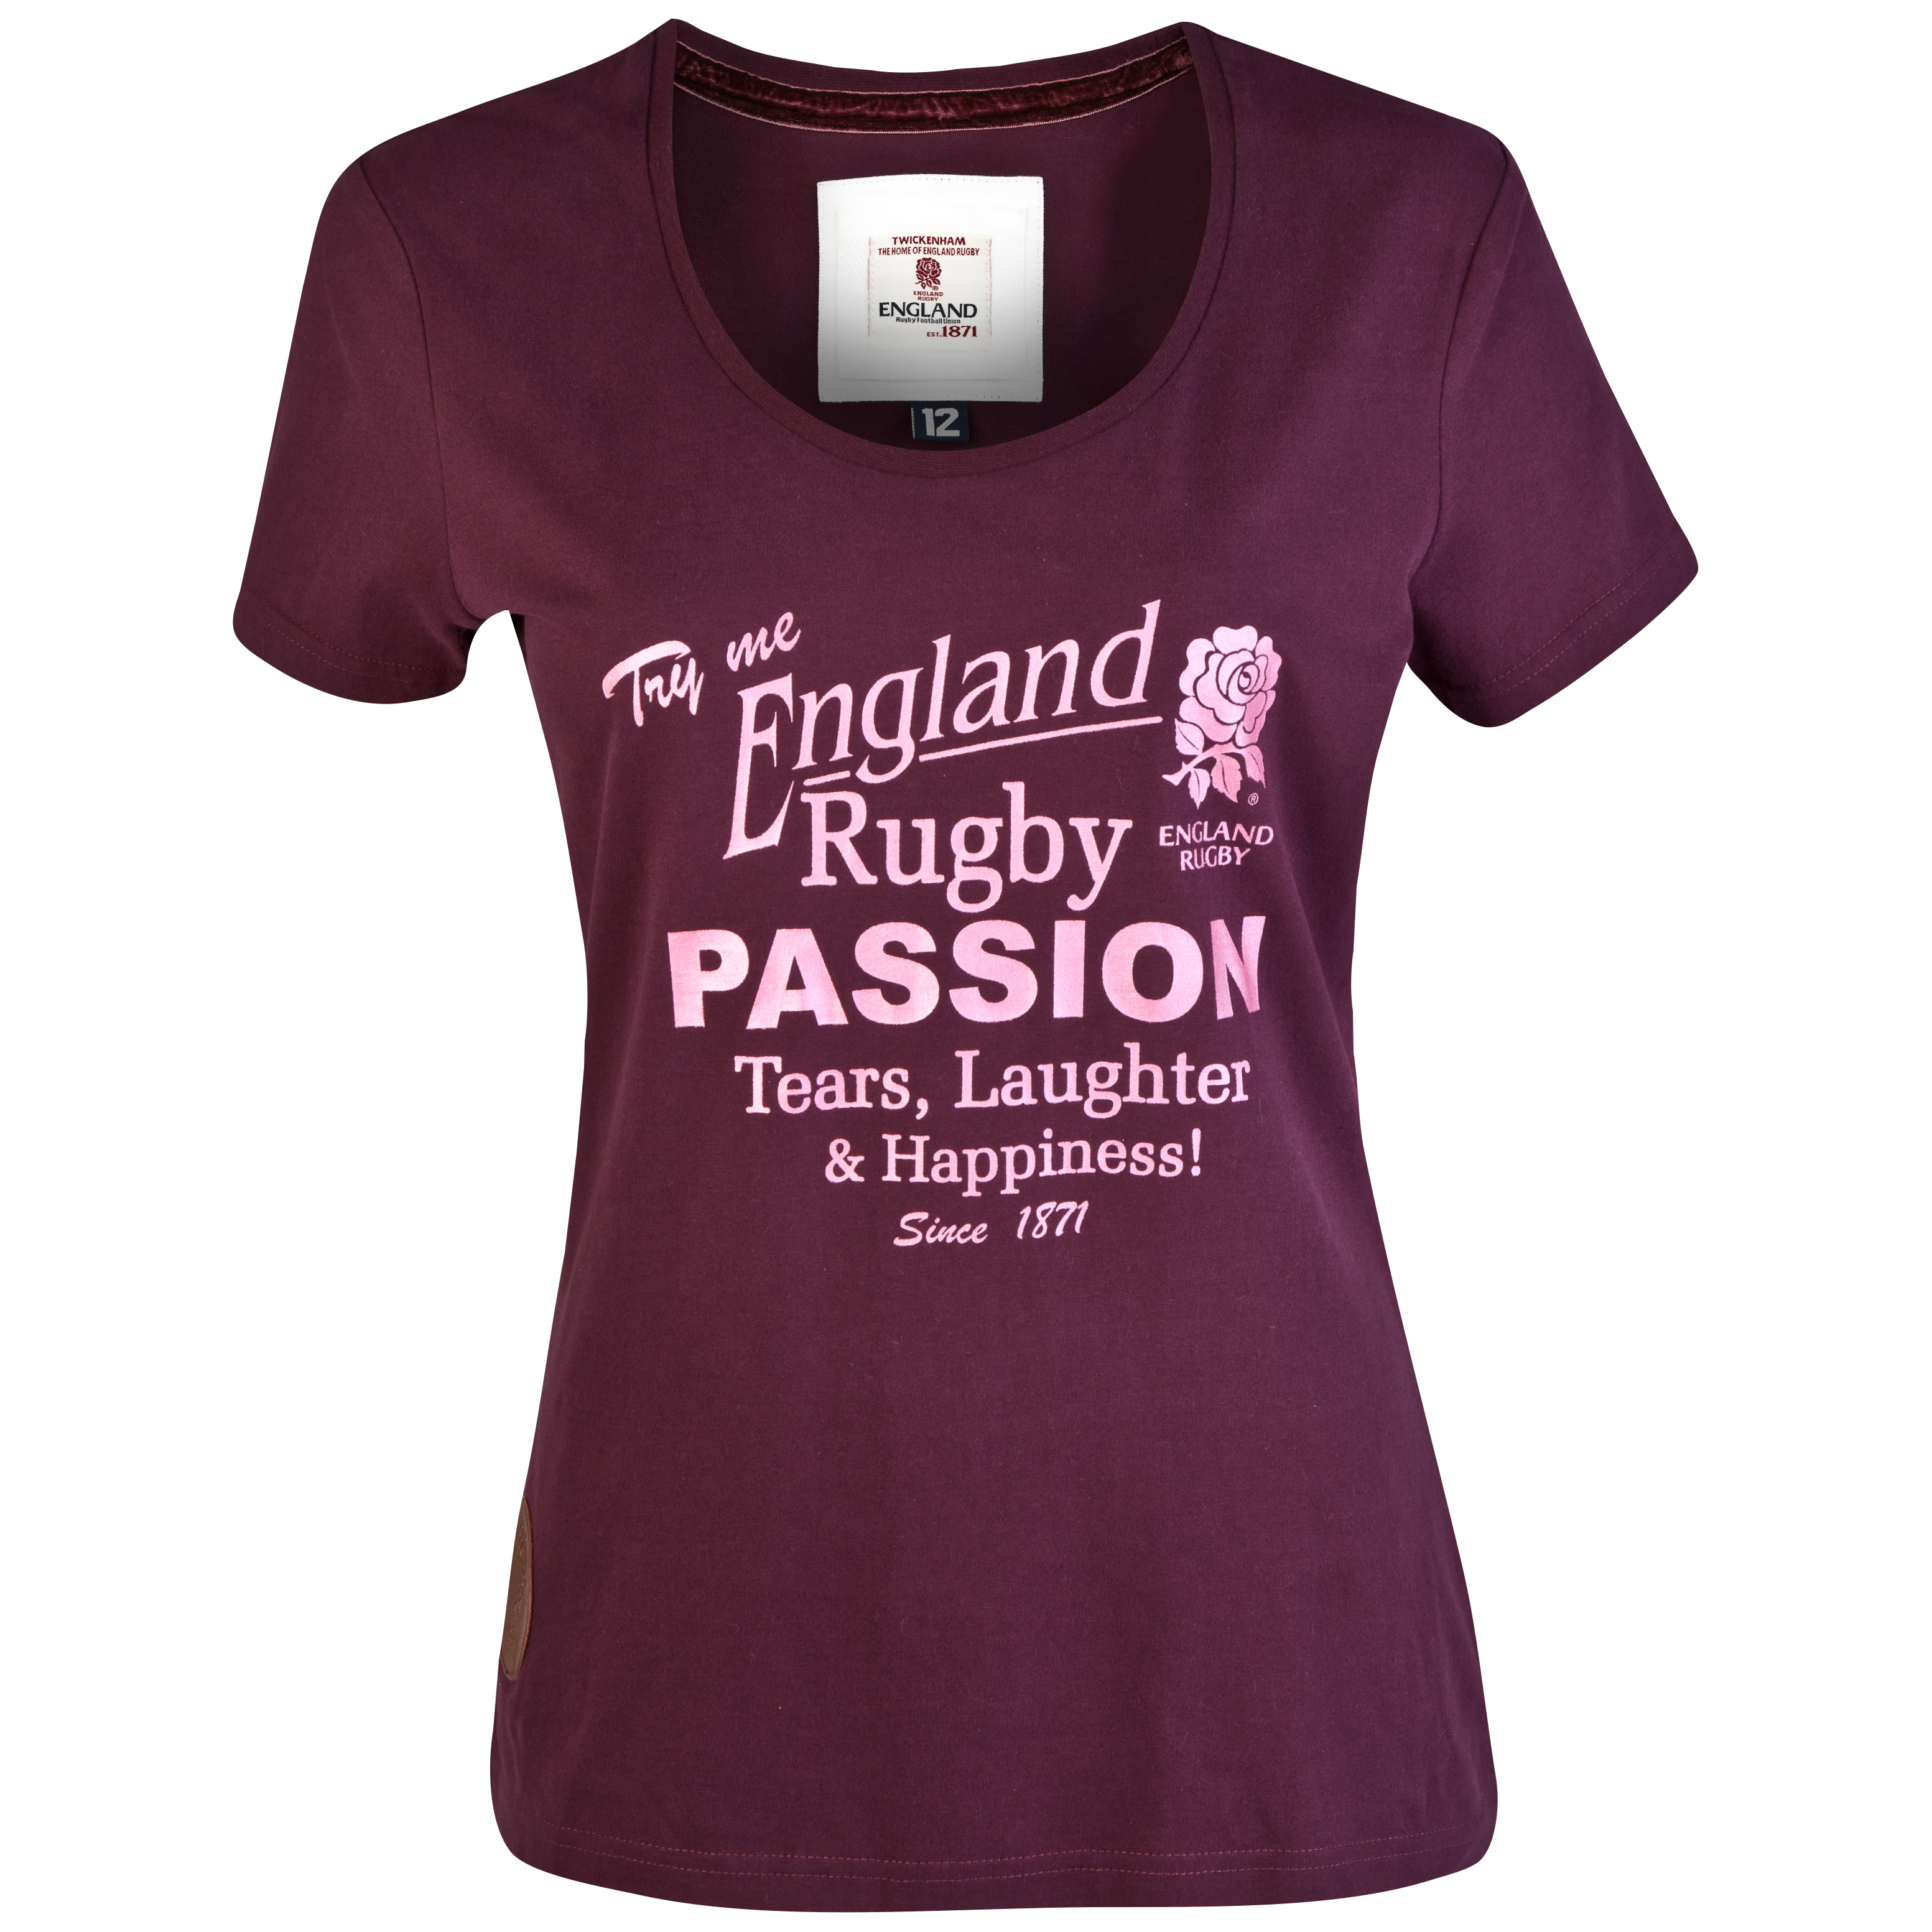 England Rugby Authentic Collection Passion T-Shirt - Brown/Pink - Womens